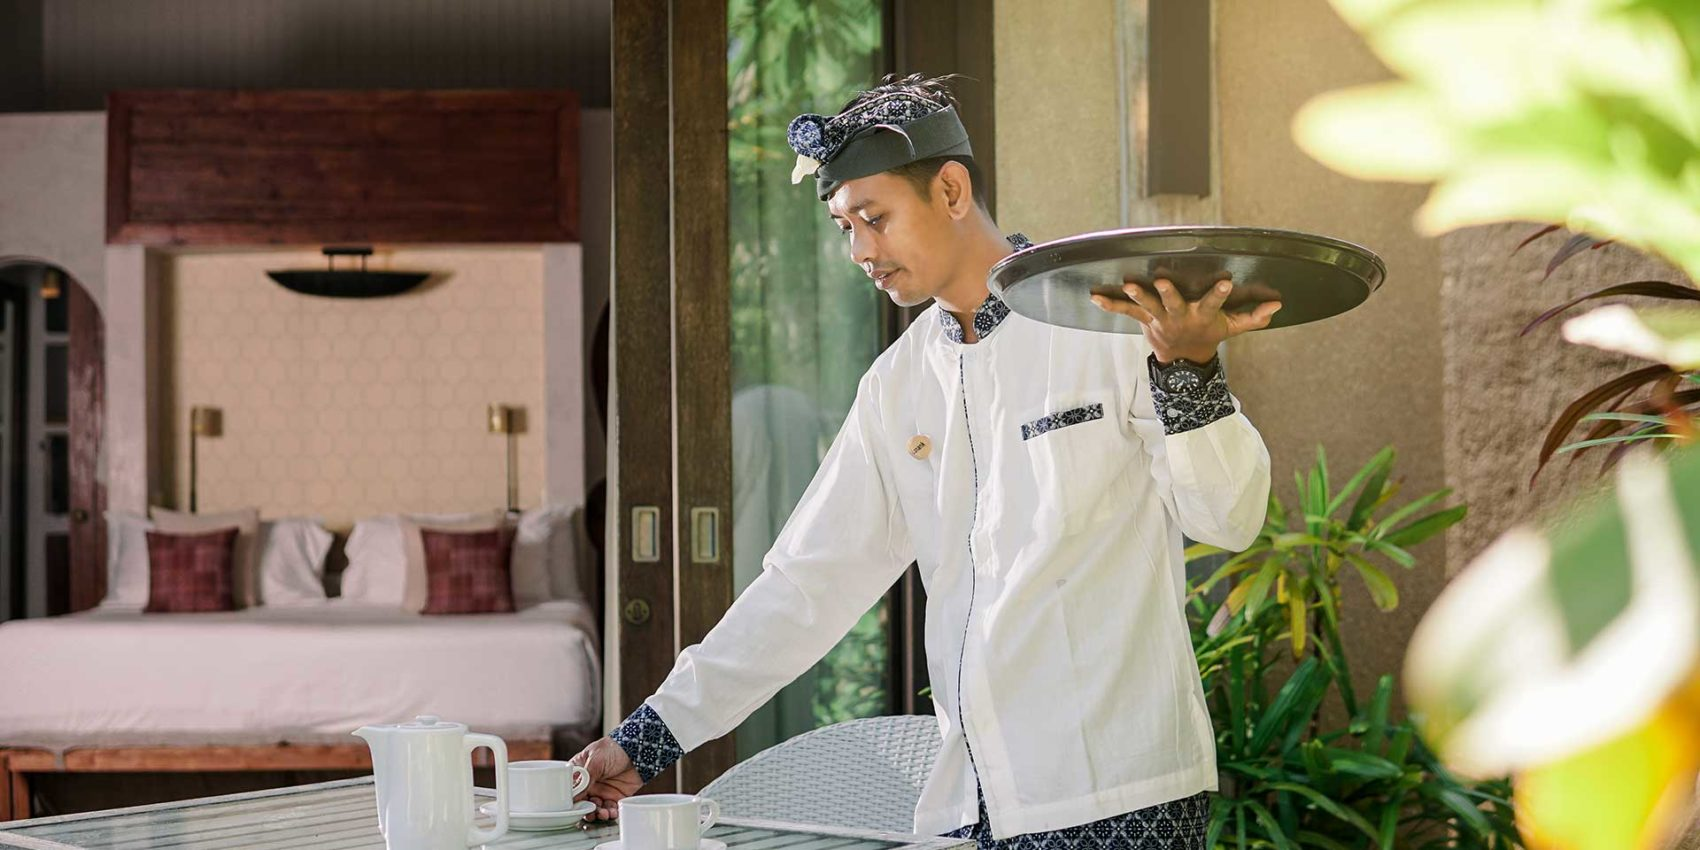 Space Villas Bali Staff